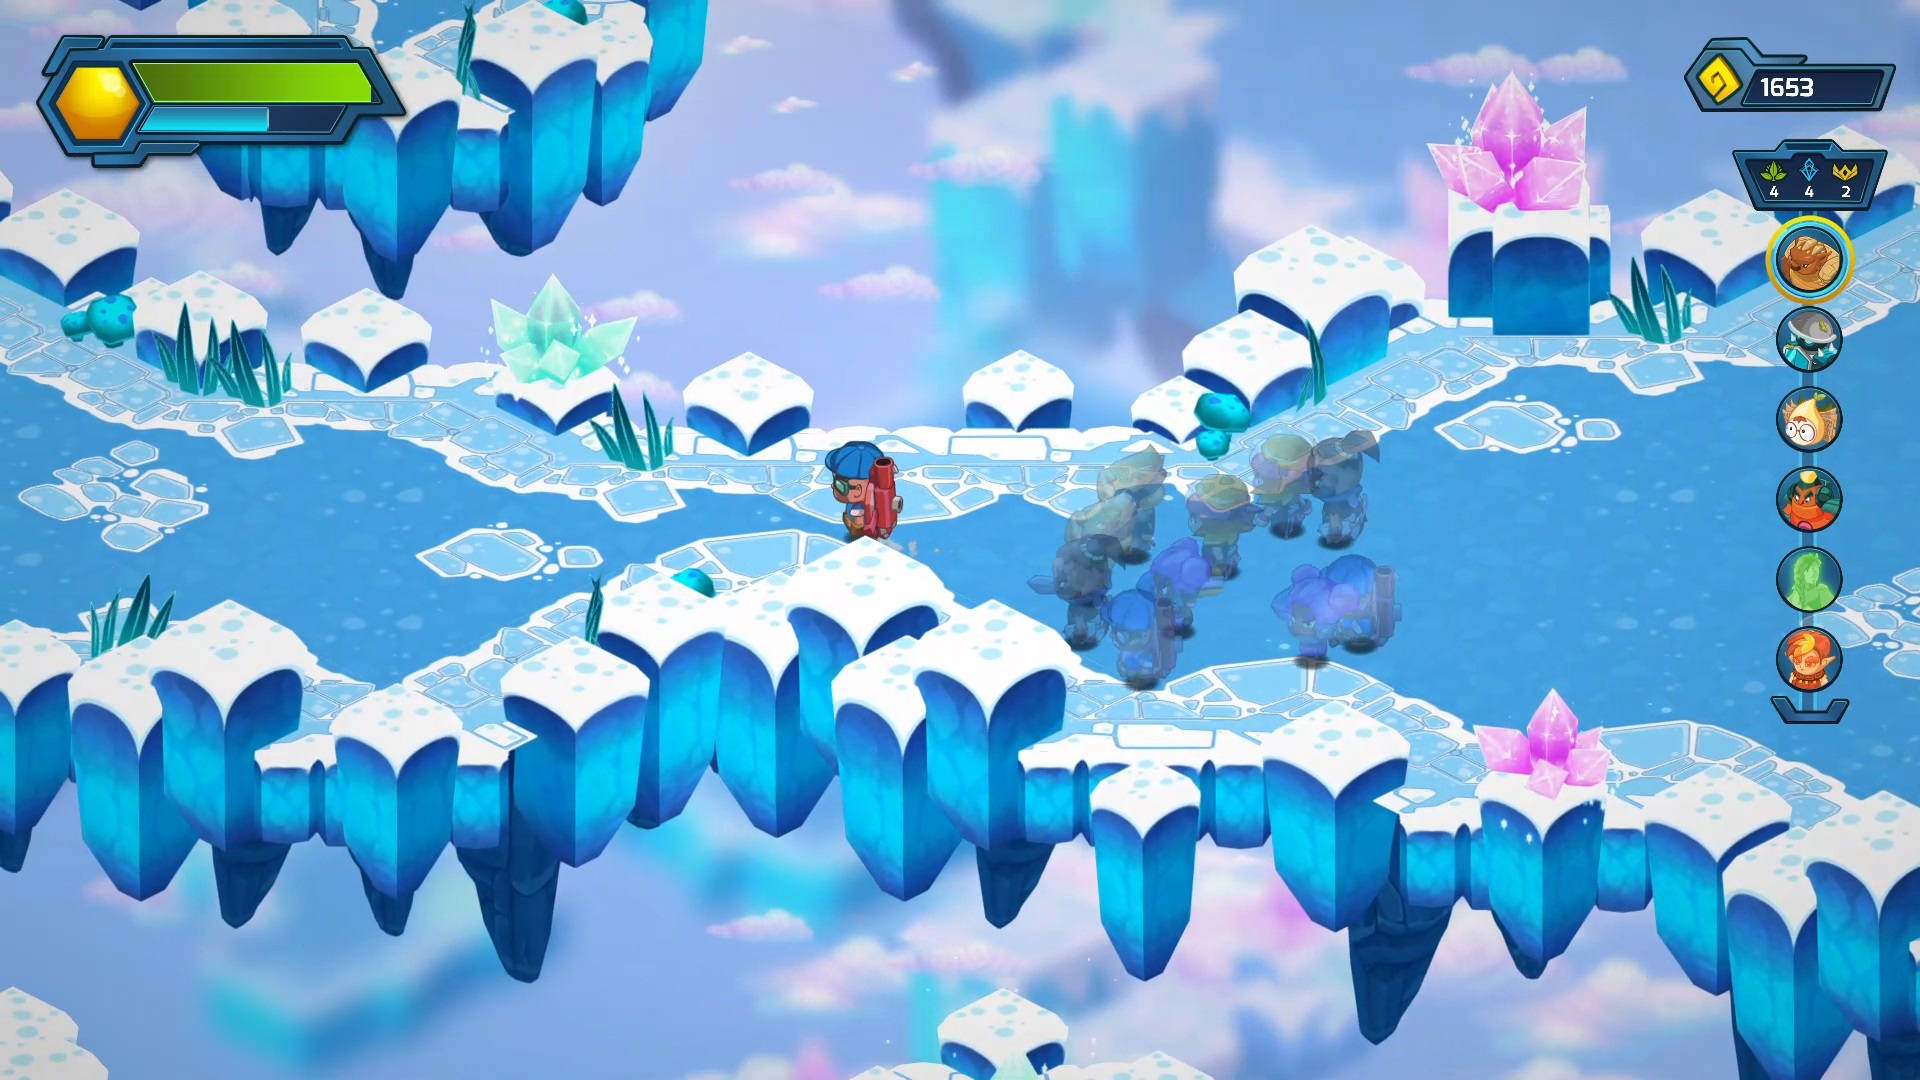 Next Up Hero is fun, but might be hamstrung by its online requirement screenshot